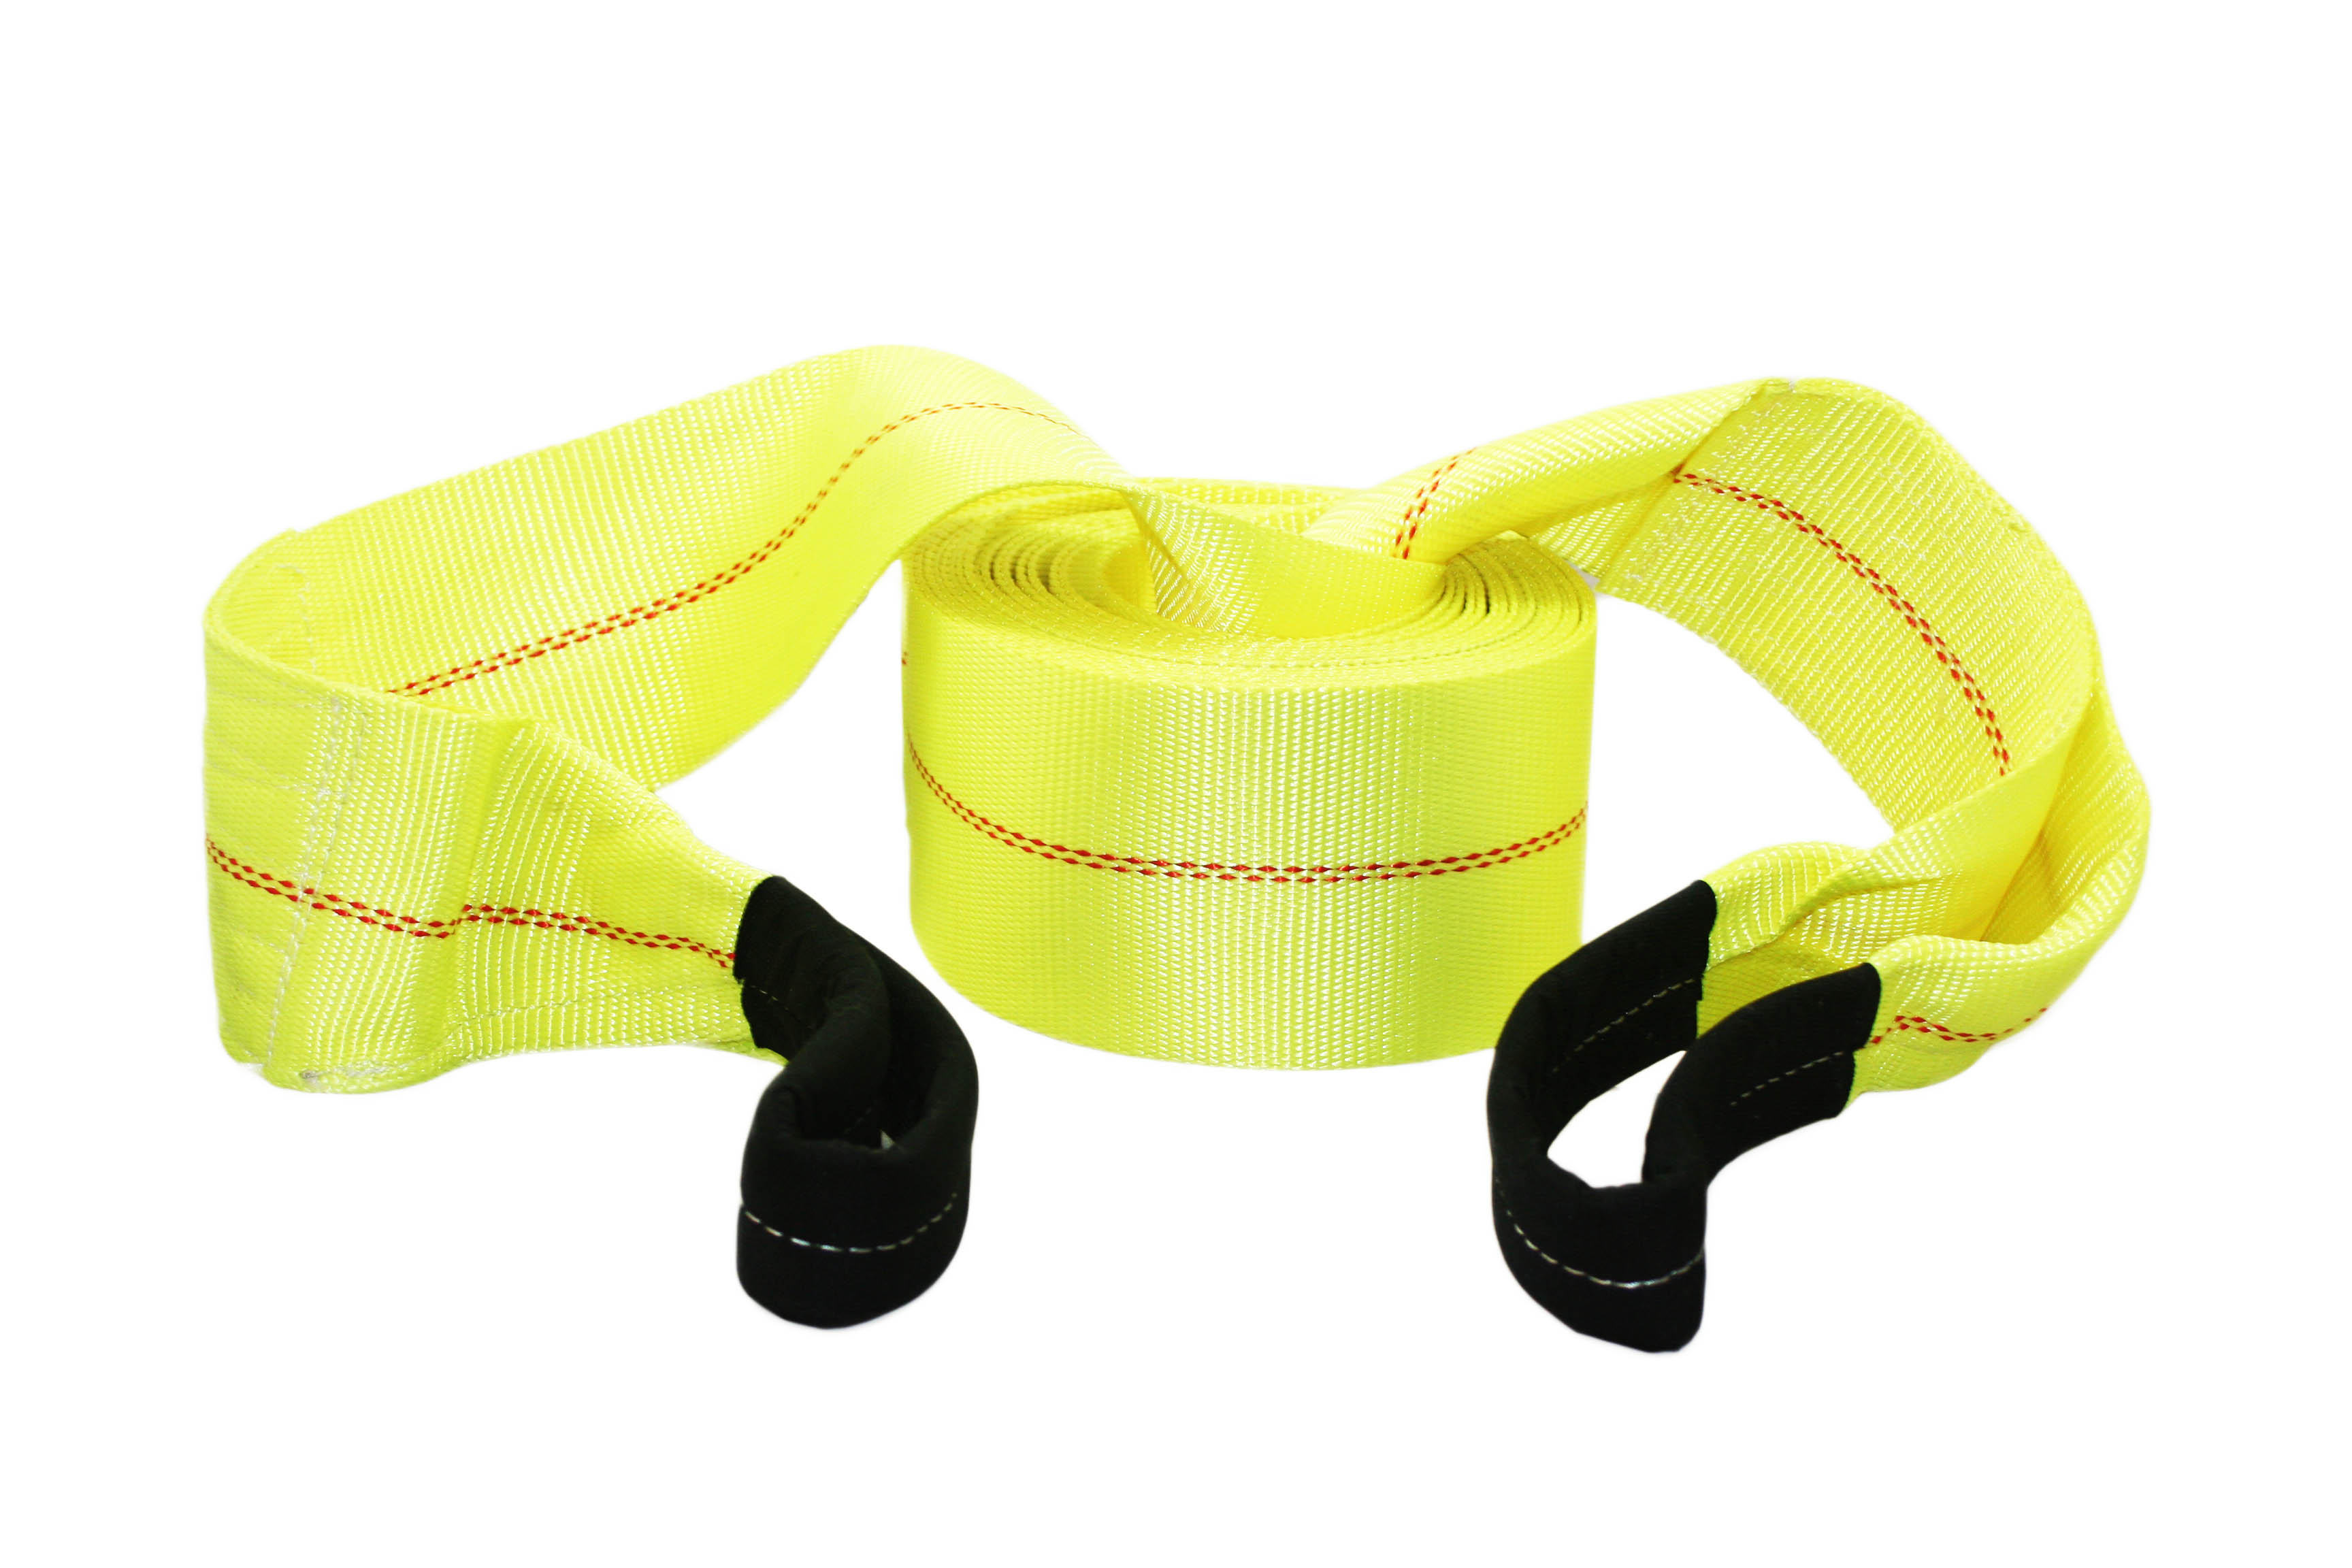 "ABN Tow Rope Strap 30' x 4"" 20,000lb Capacity Heavy Duty Towing Nylon 30 Feet by ABN"